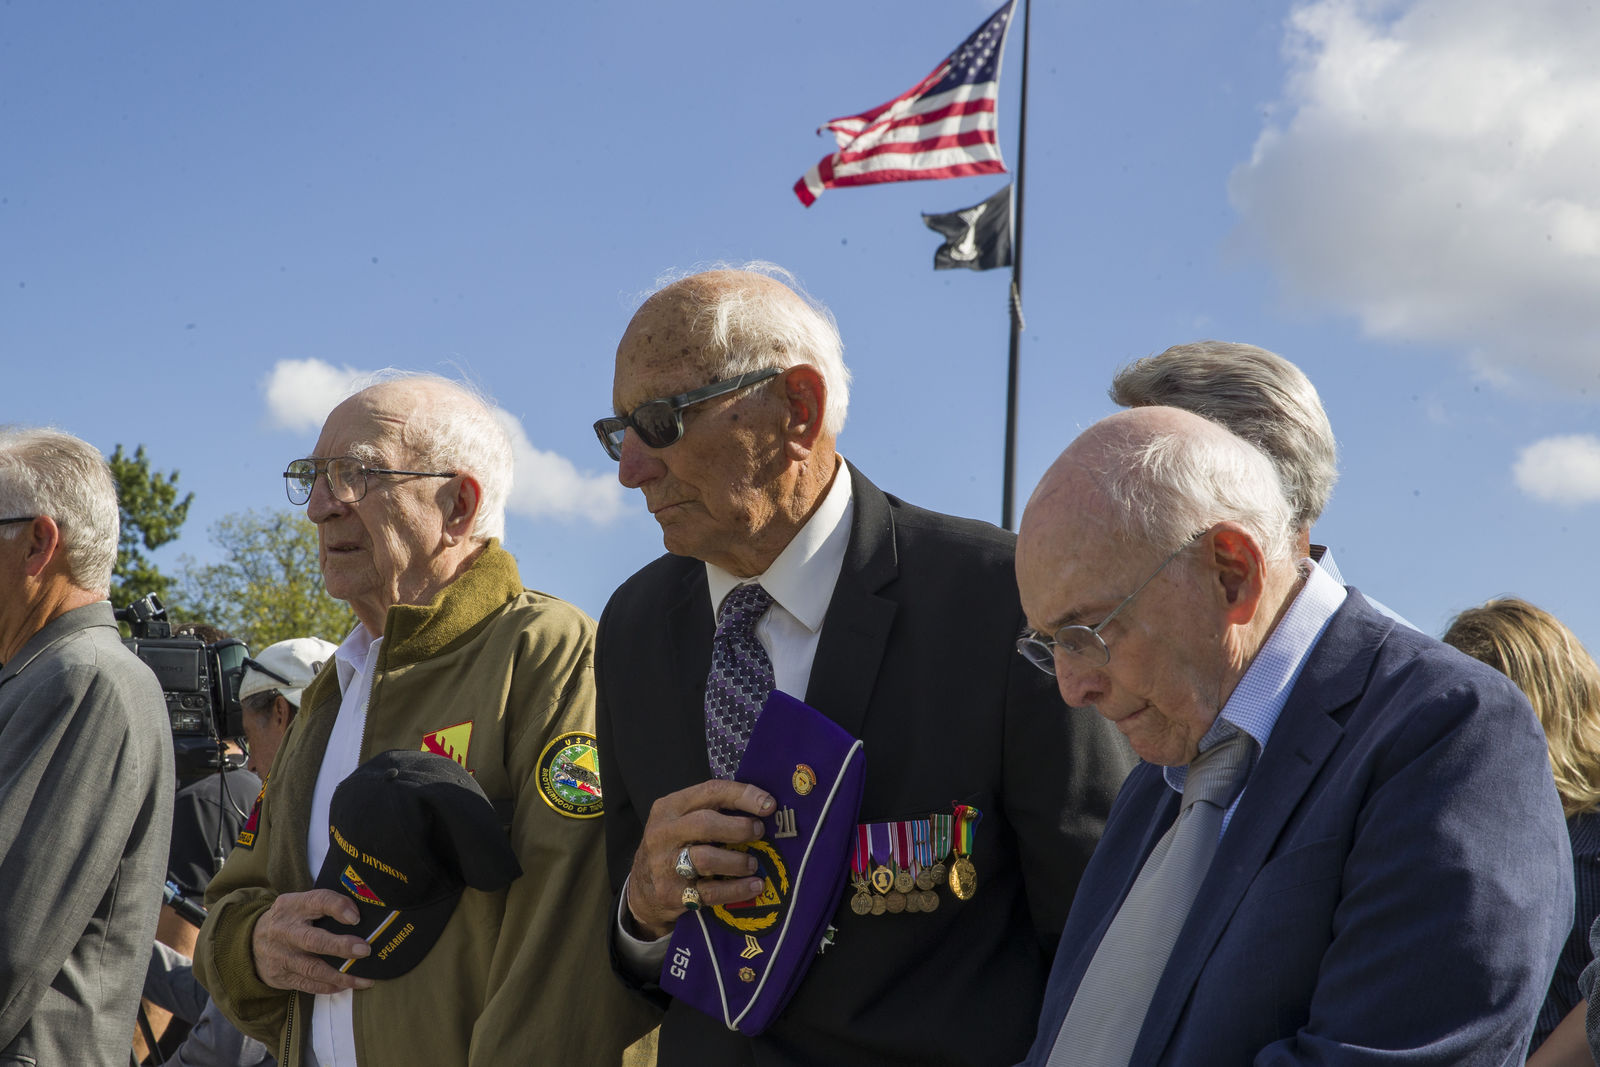 World War II veterans Clarence Smoyer, 96, left, Joseph Caserta and Buck Marsh bow their heads during a ceremony to present the Bronze Star to Smoyer at the World War II Memorial, Wednesday, Sept. 18, 2019, in Washington. Smoyer fought with the U.S. Army's 3rd Armored Division, nicknamed the Spearhead Division(AP Photo/Alex Brandon)